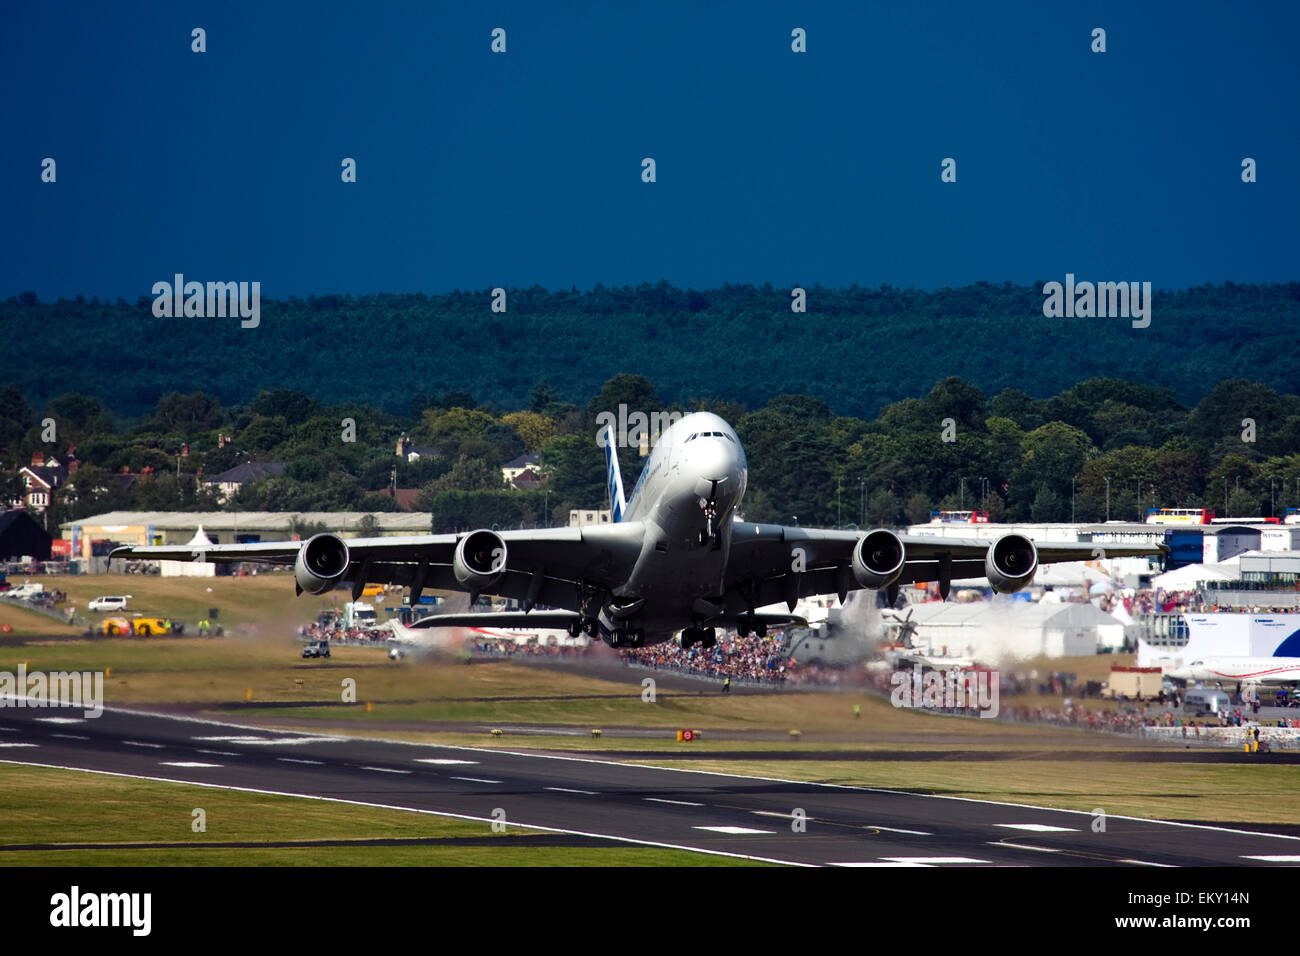 Airbus A380 taking off at Farnborough International Airshow 2015 Stock Photo